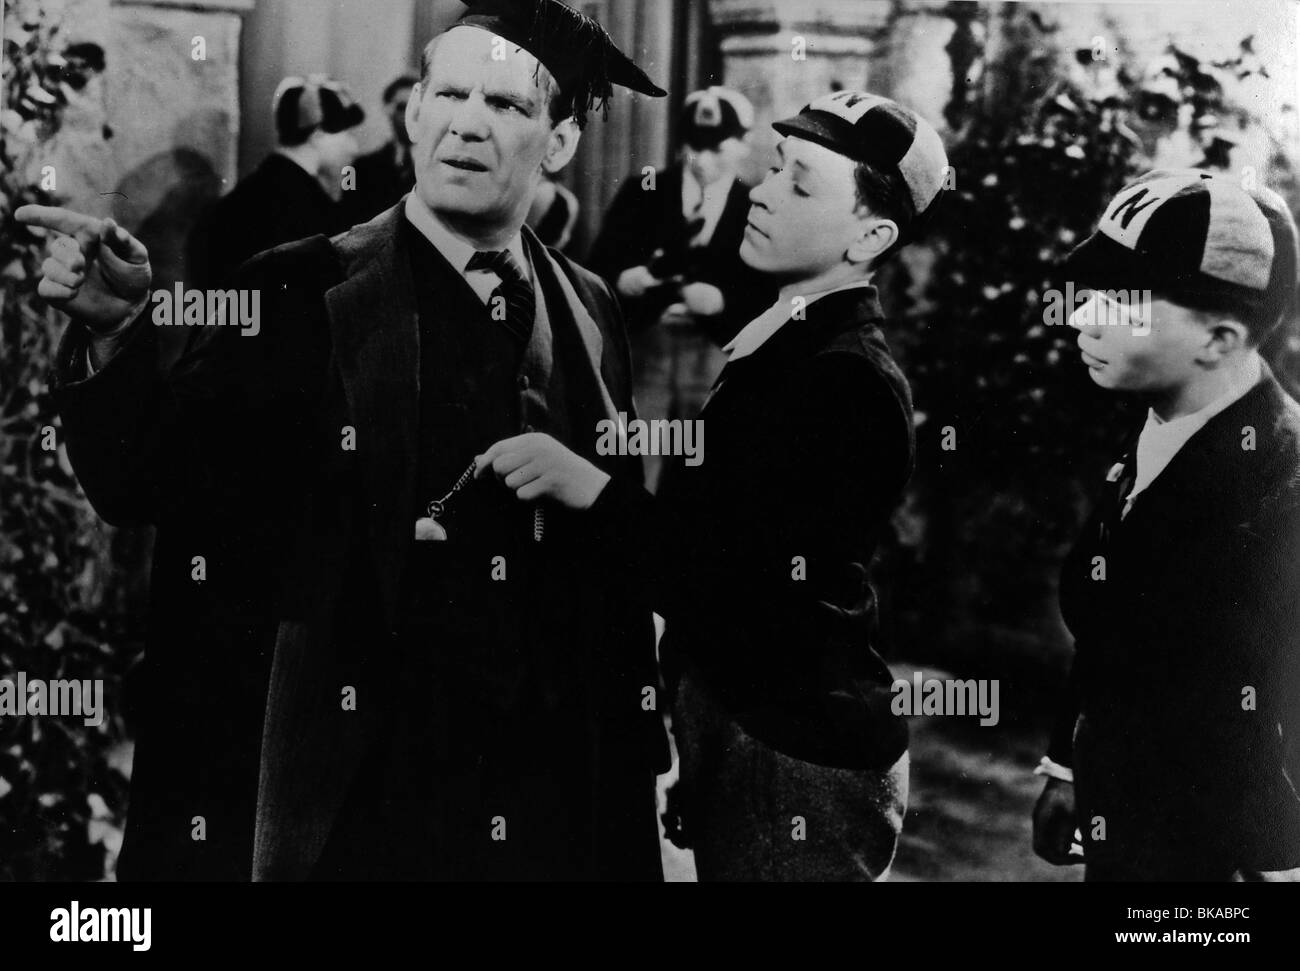 BOYS WILL BE BOYS (1935) WILL HAY BWB 001P - Stock Image